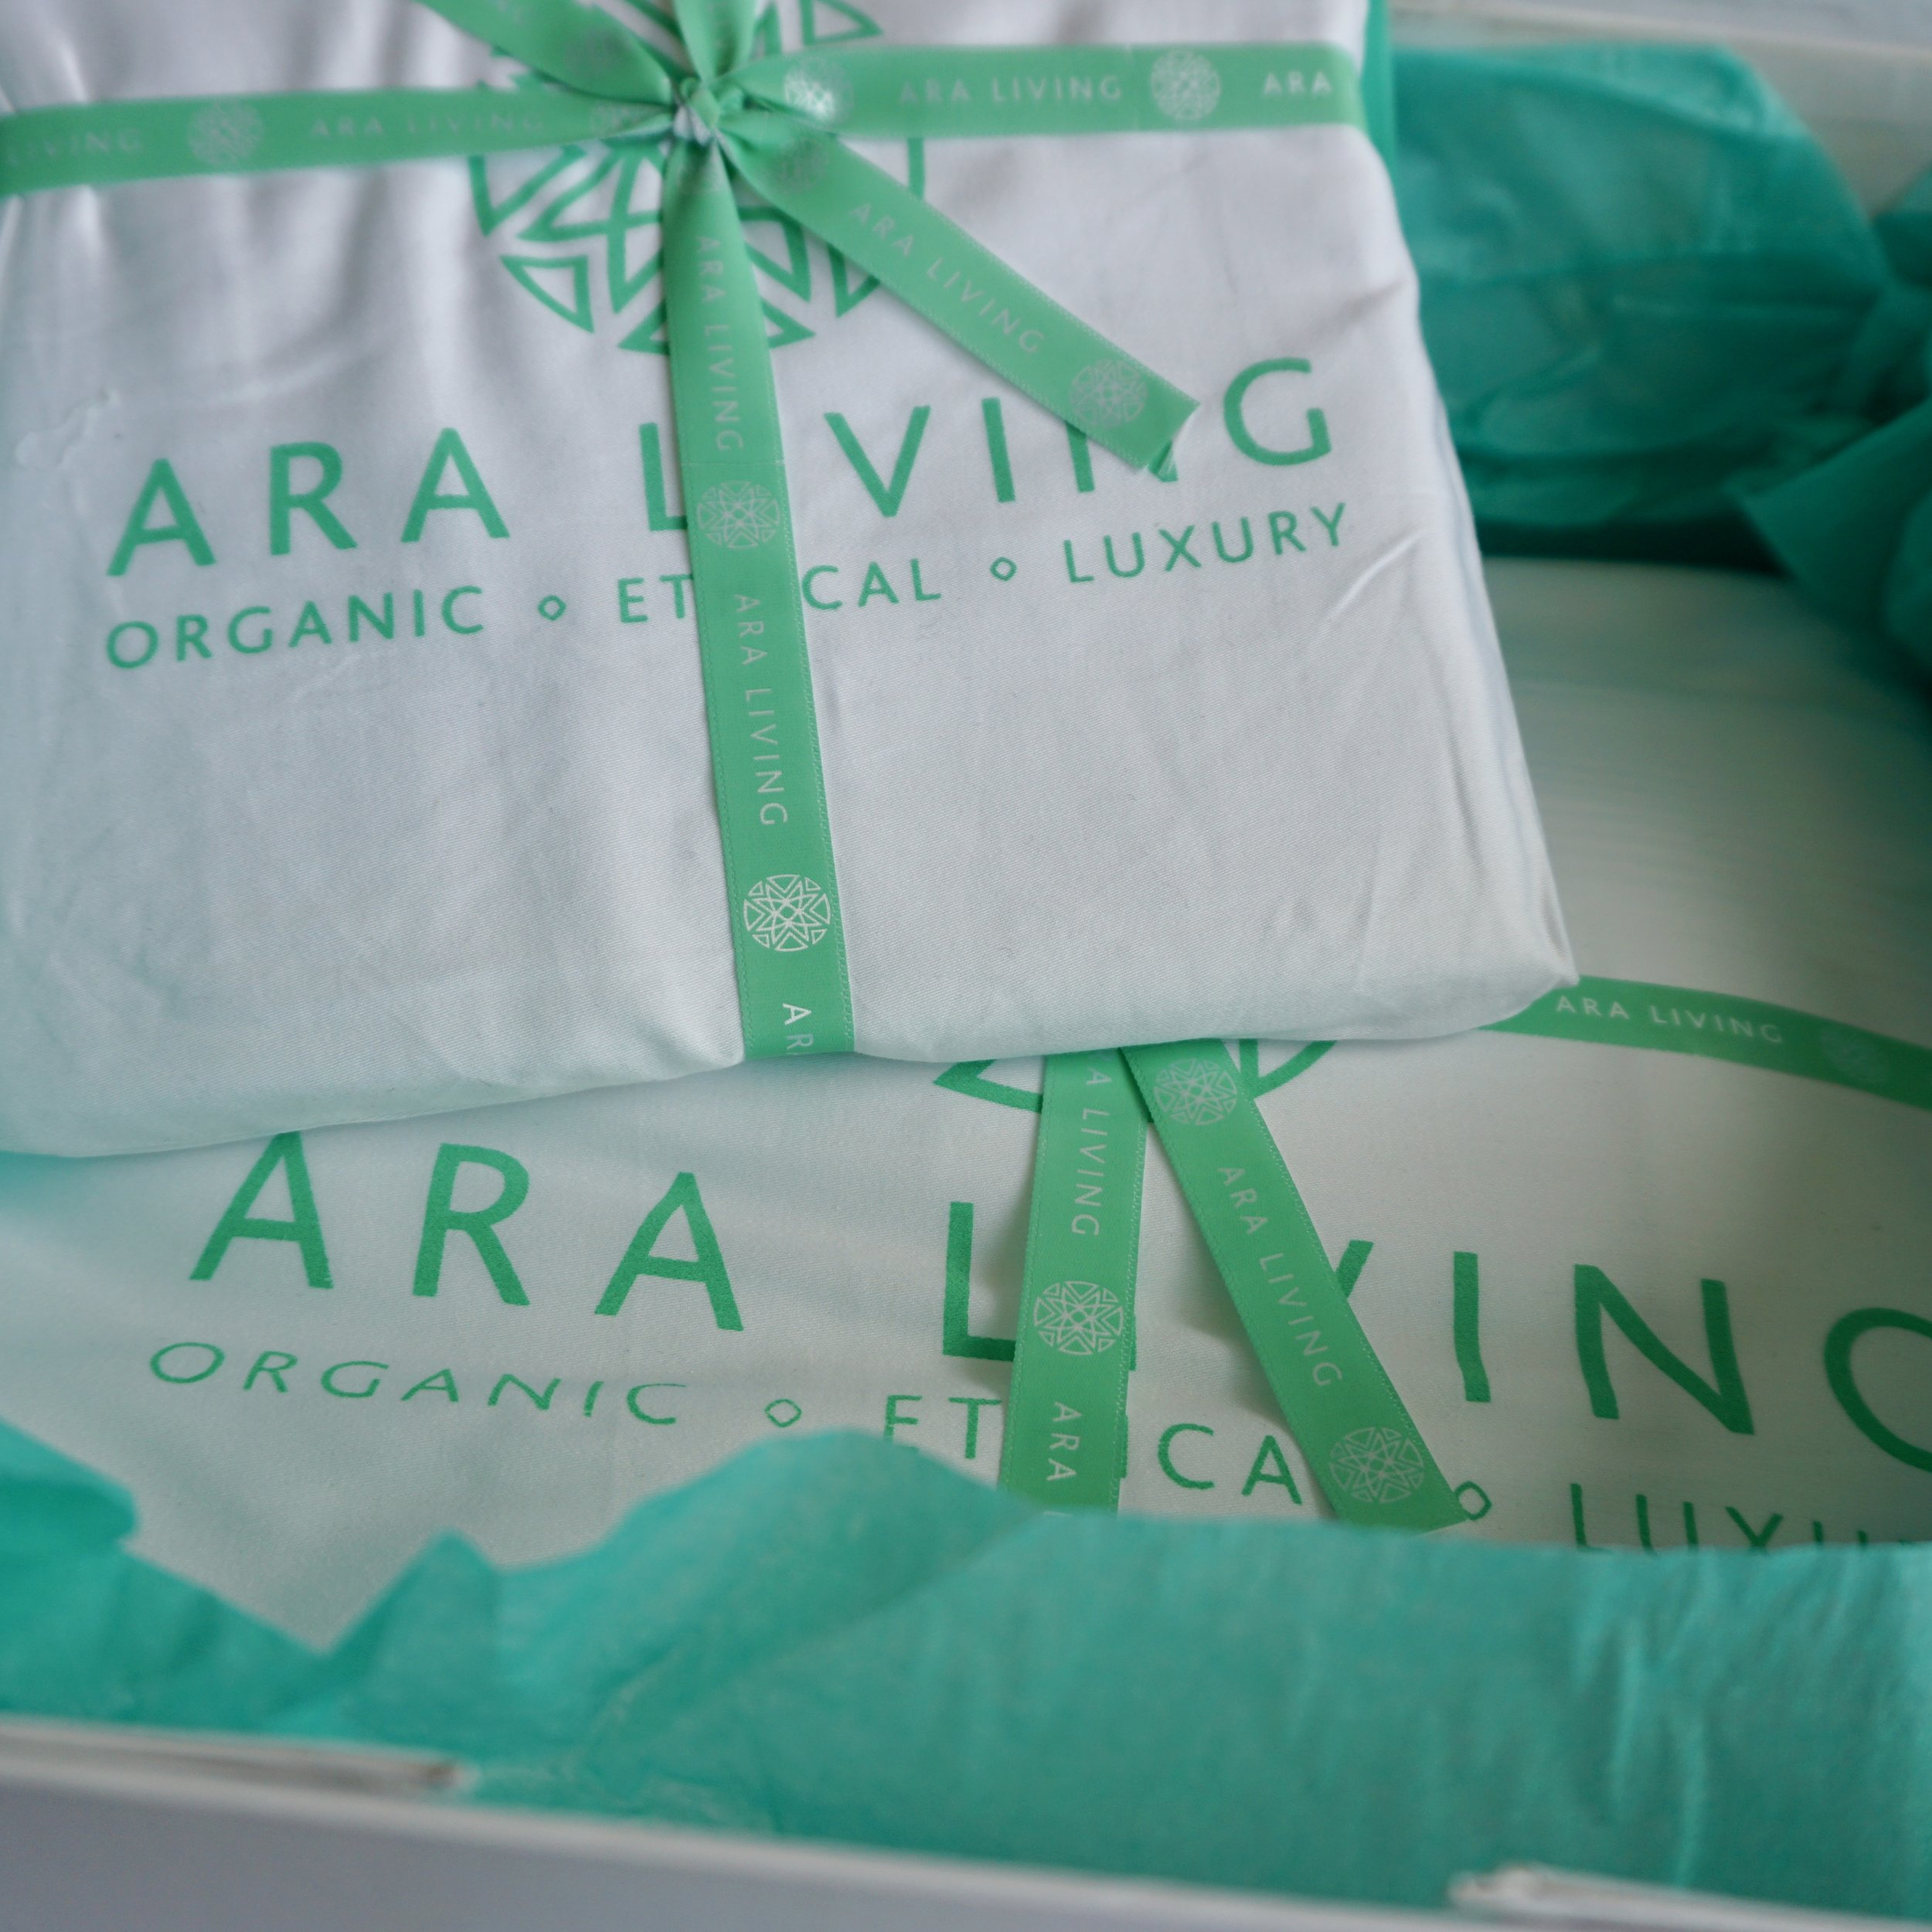 Ara living packaging- reusable cotton bags